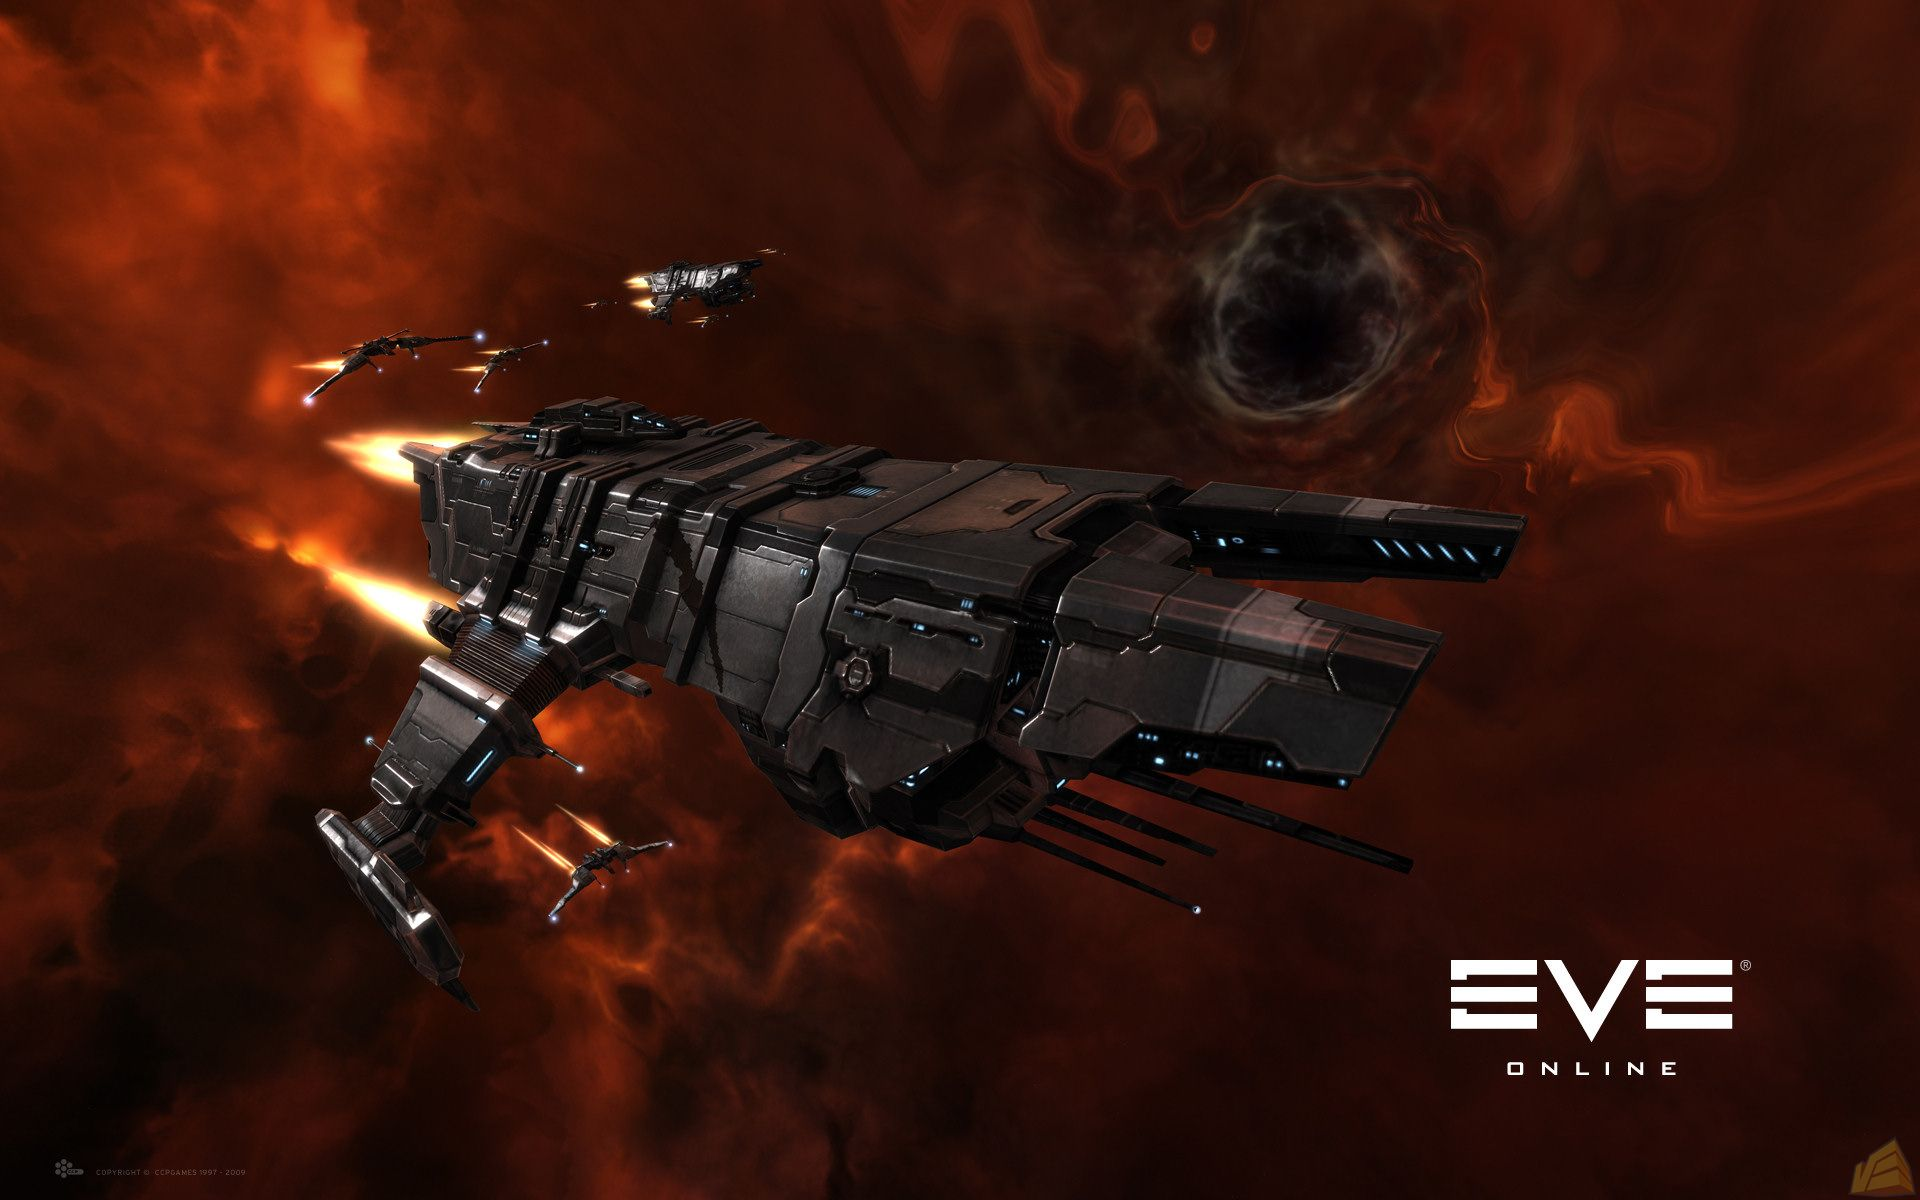 Plex EVE online from RPGcash fair prices